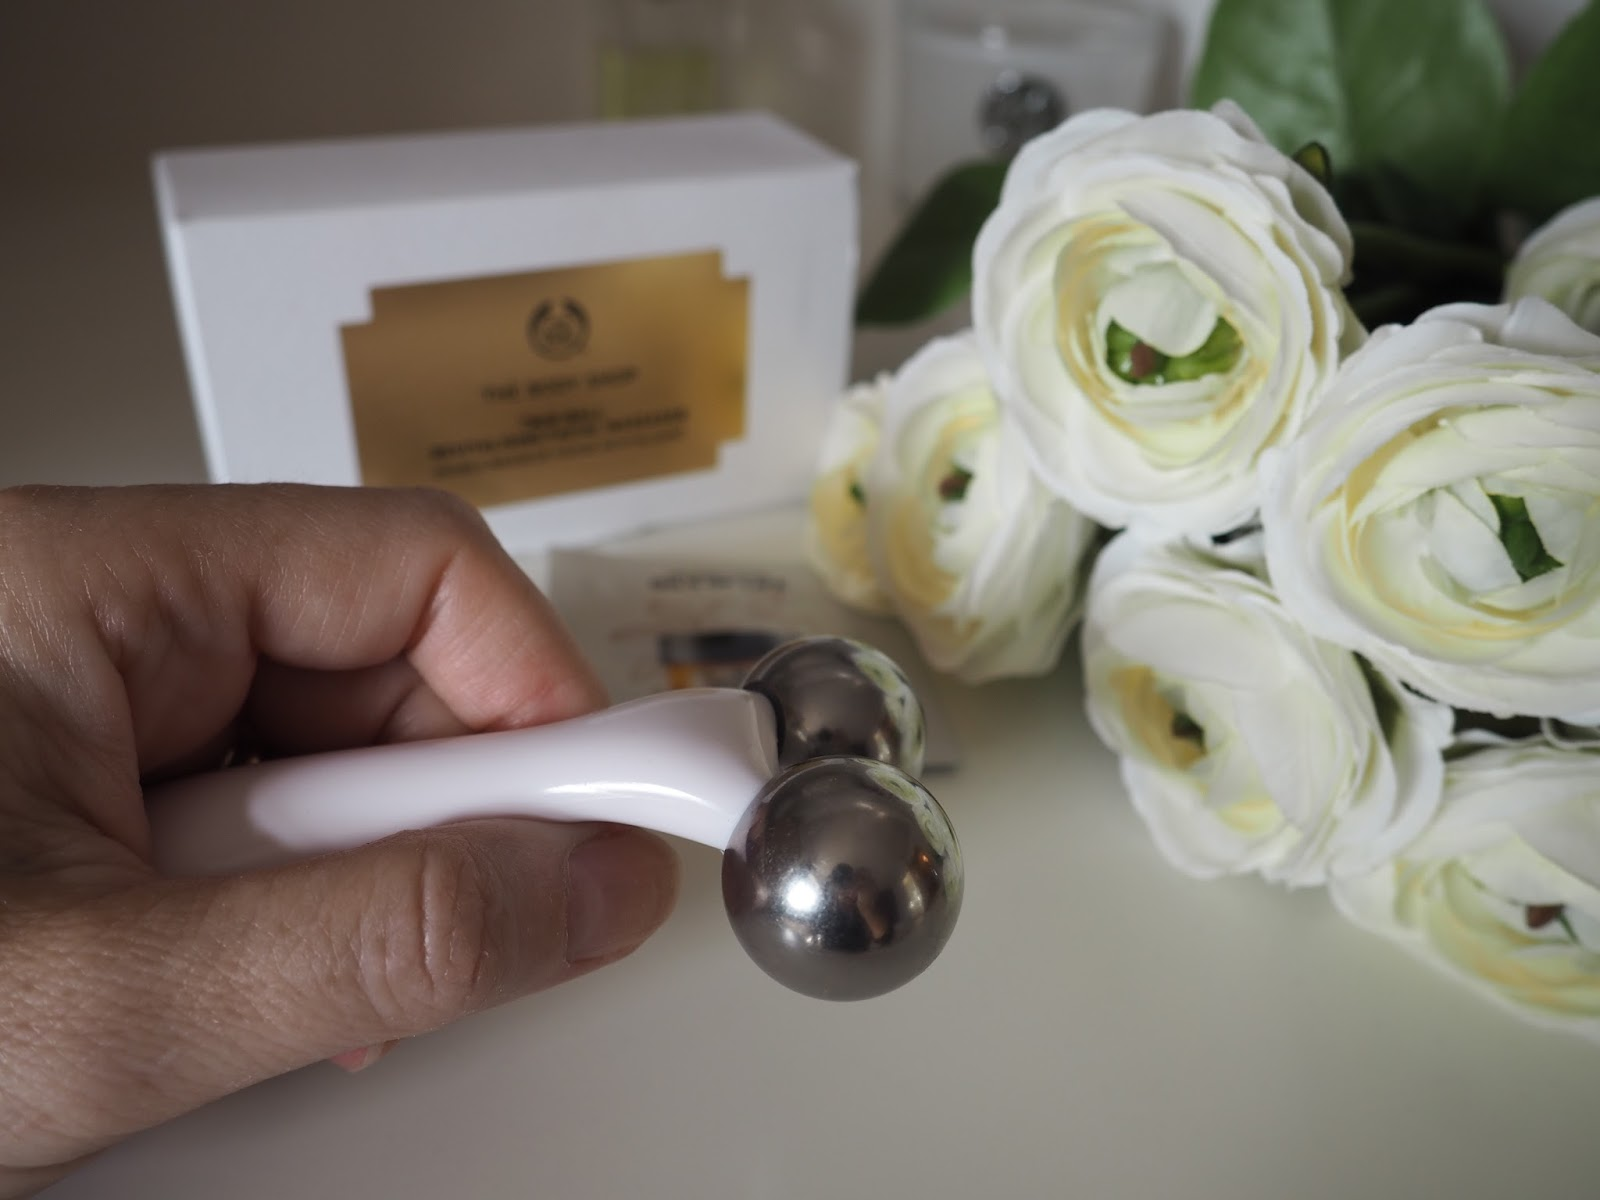 The Body Shop twin ball facial massager Oils of Life review